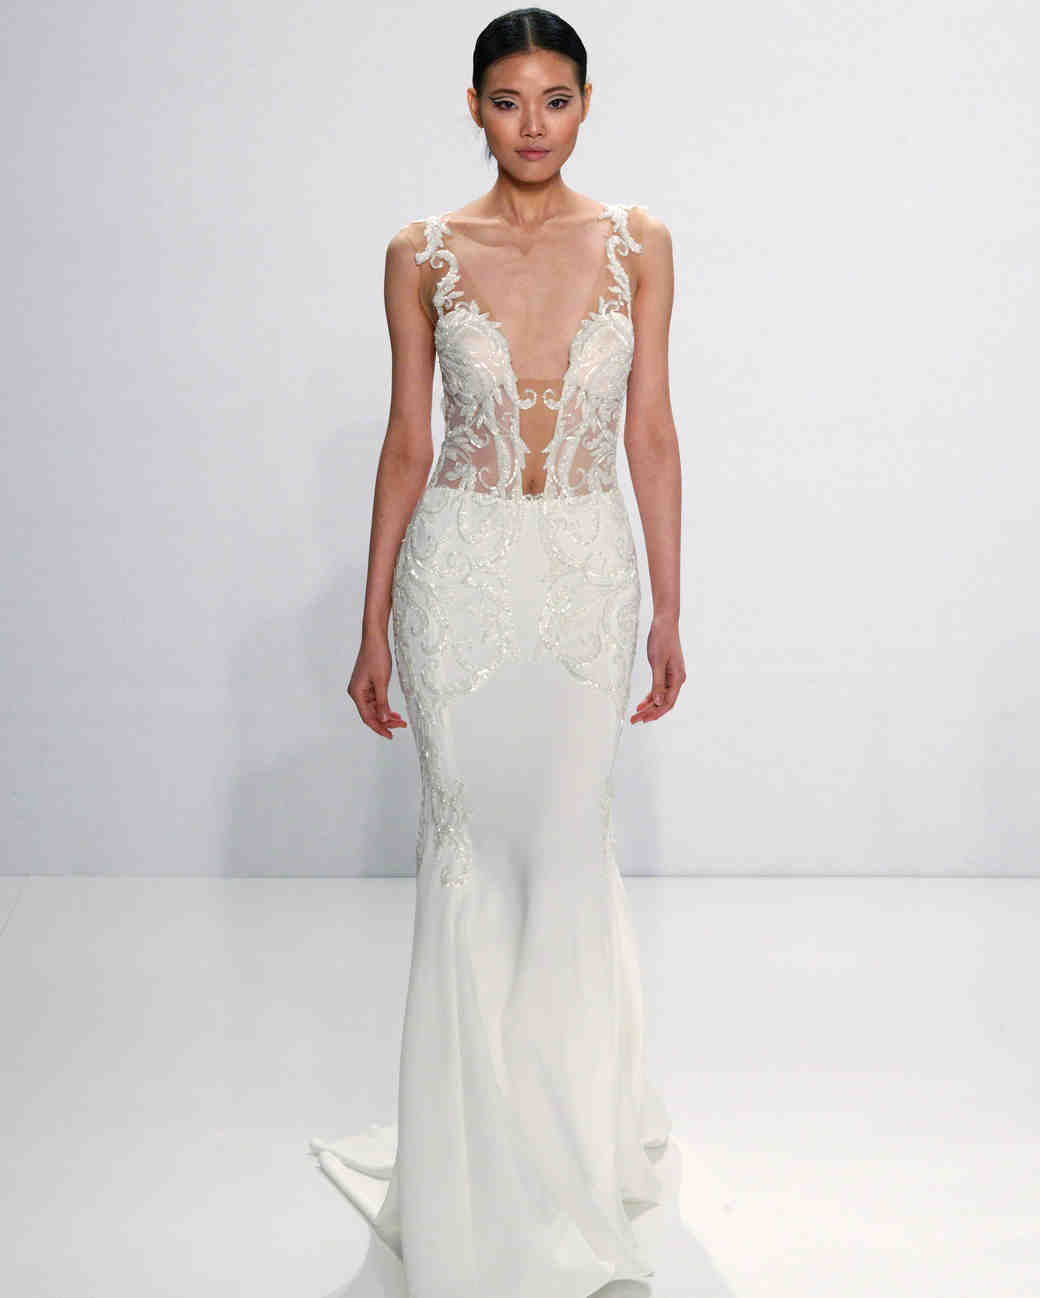 Pnina tornai wedding dresses discount wedding dresses for Pnina tornai wedding dresses prices